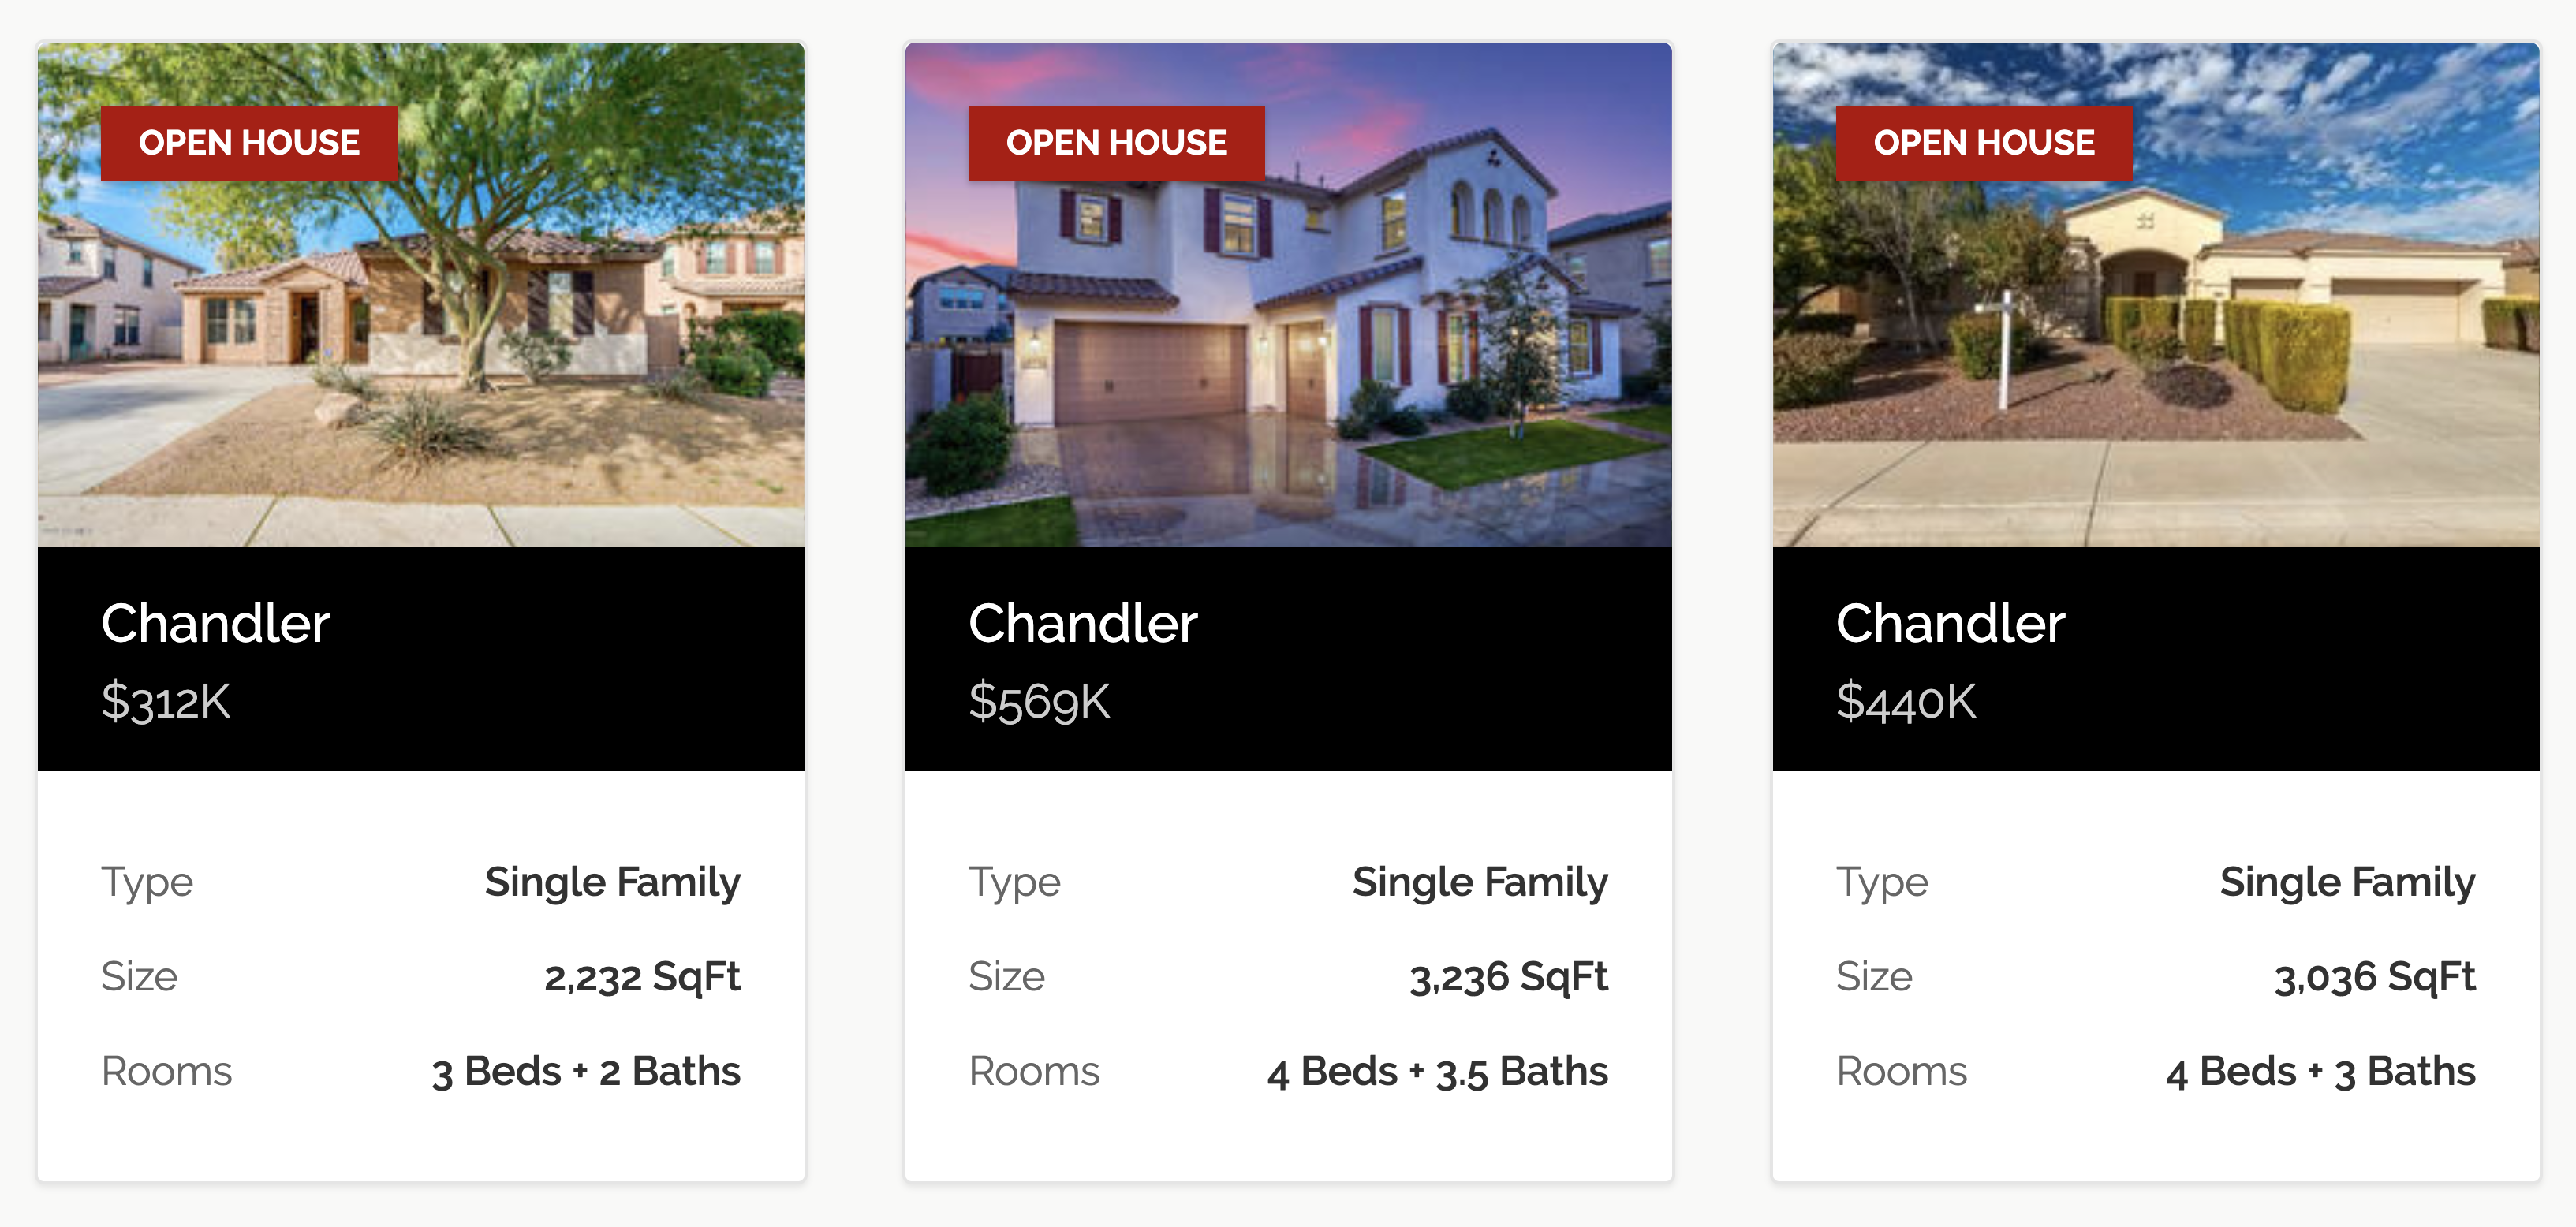 Open Houses In Chandler This Weekend